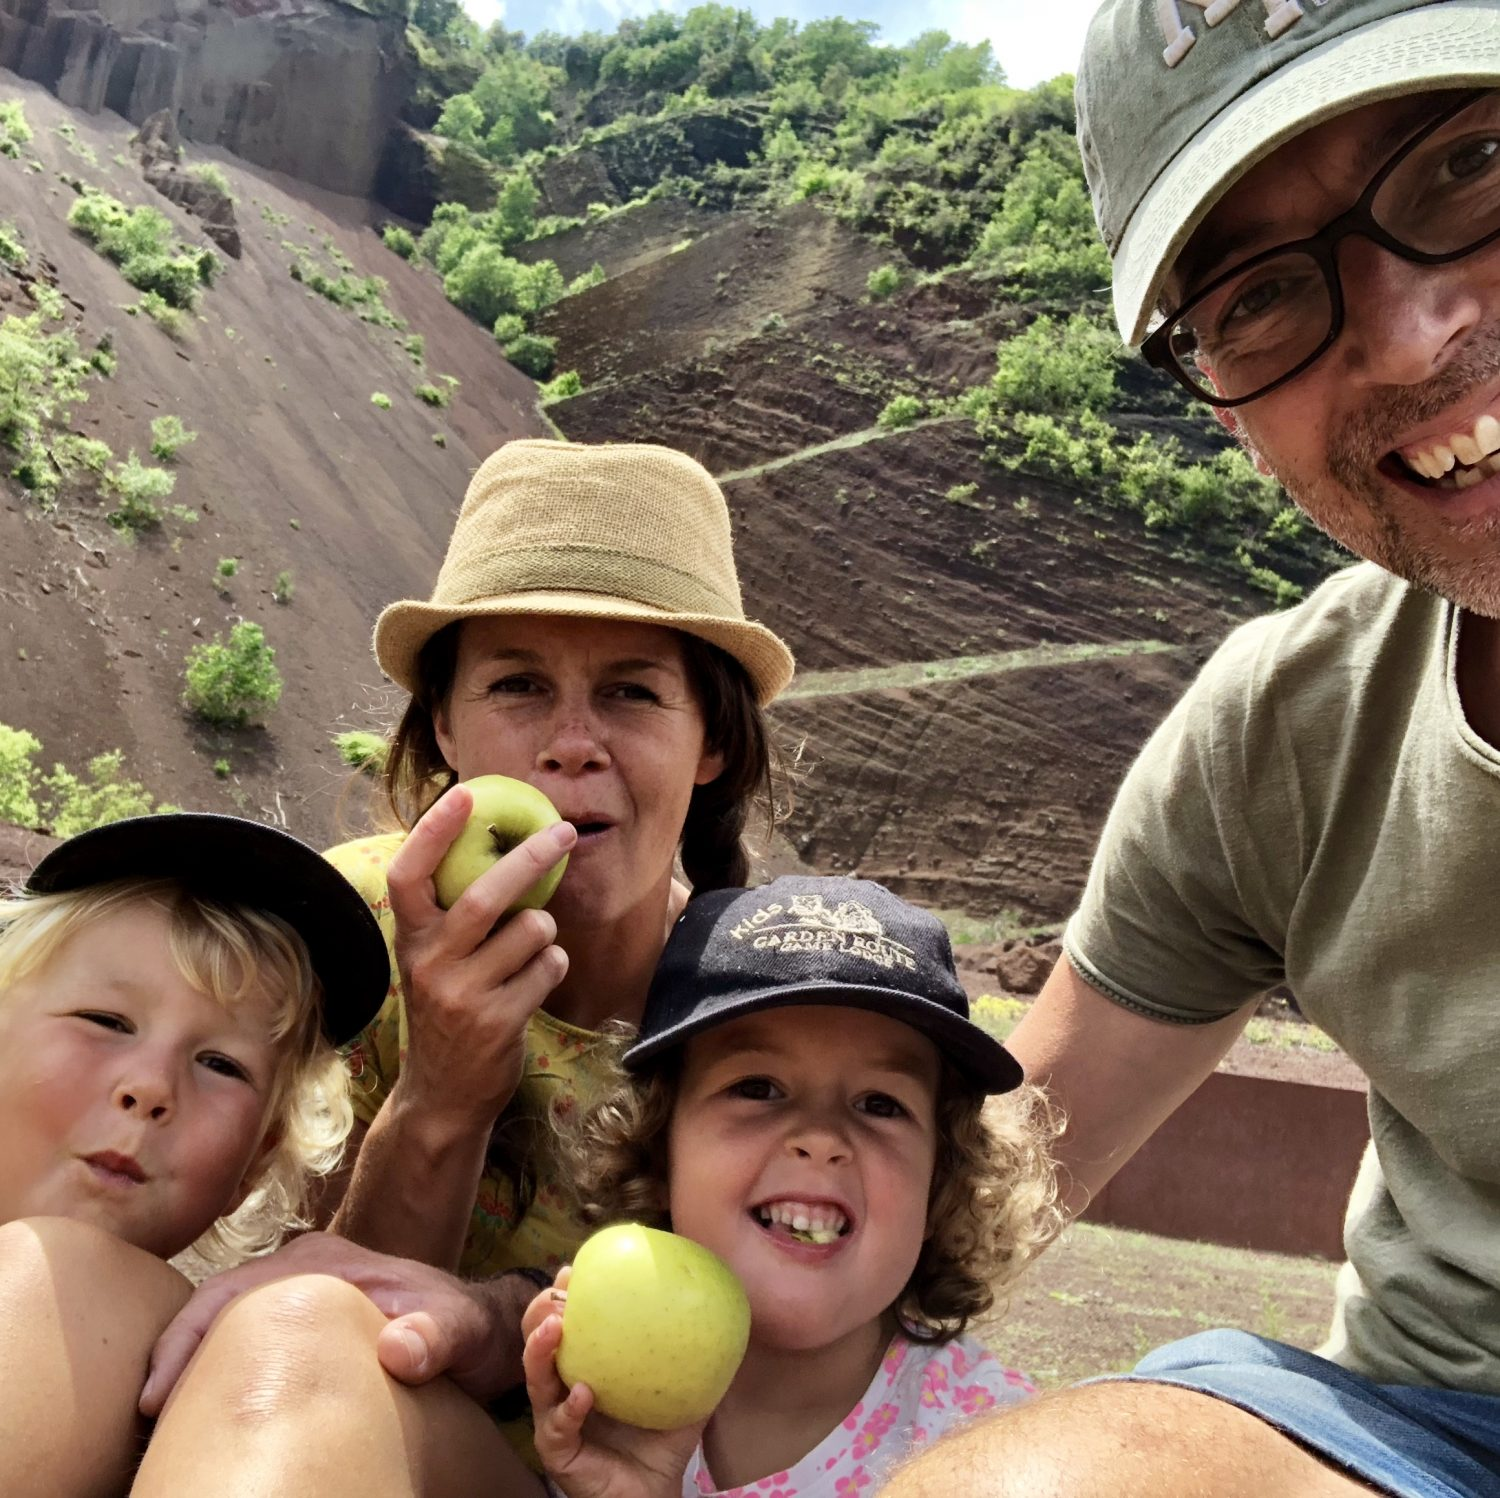 Expedition Family Happiness - Eating a apple inside a volcano!